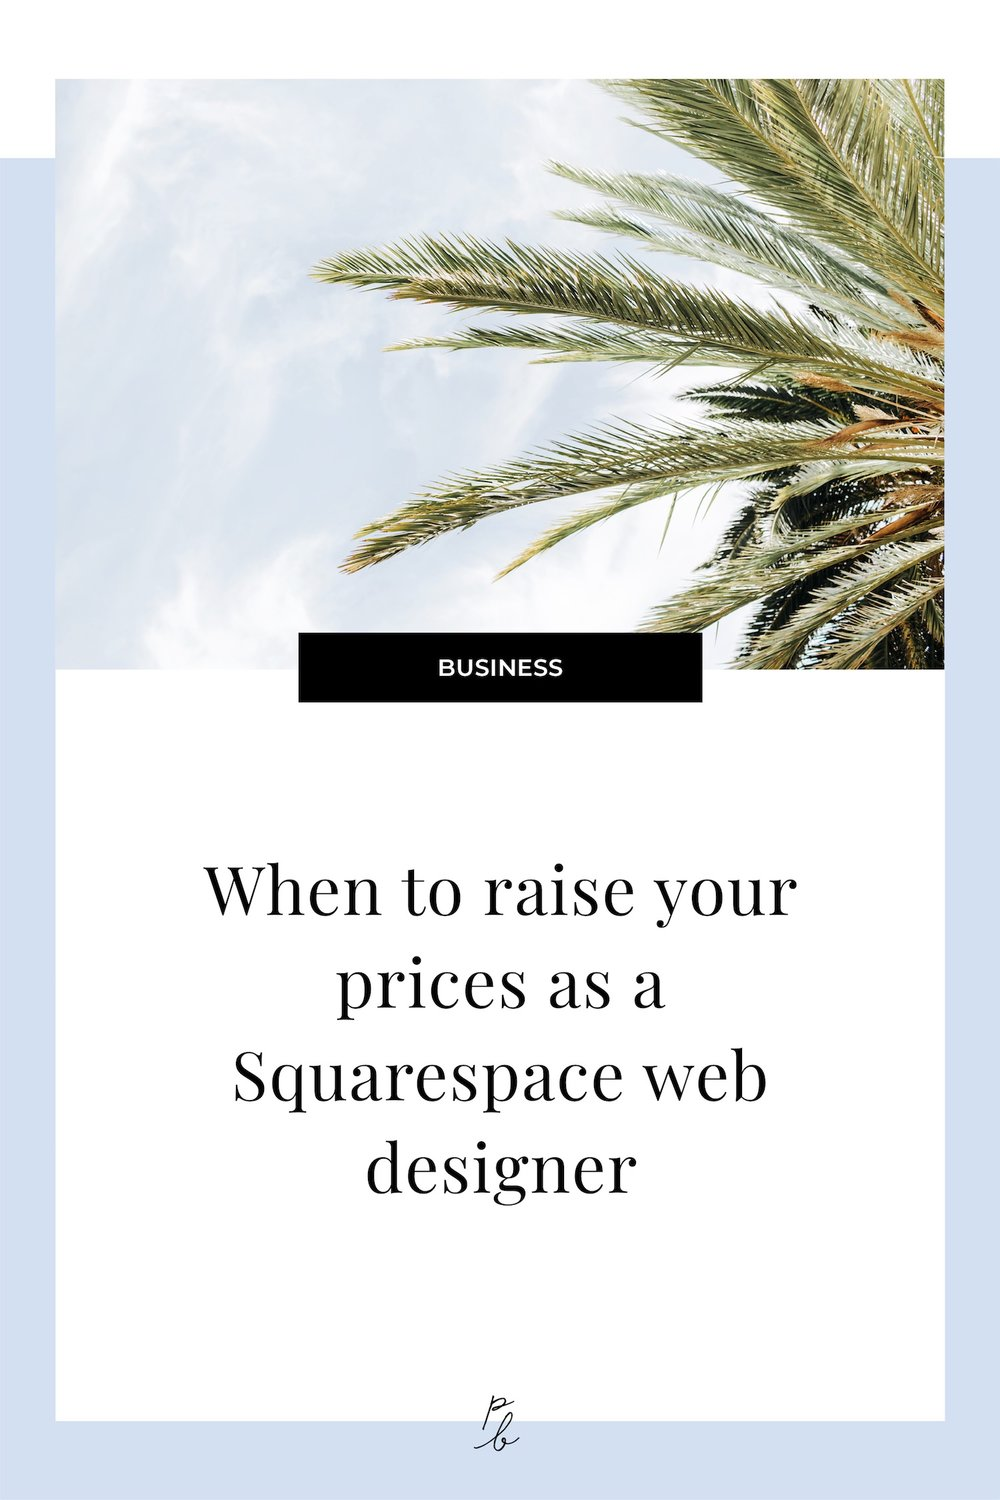 When to raise your prices as a Squarespace web designer.jpg